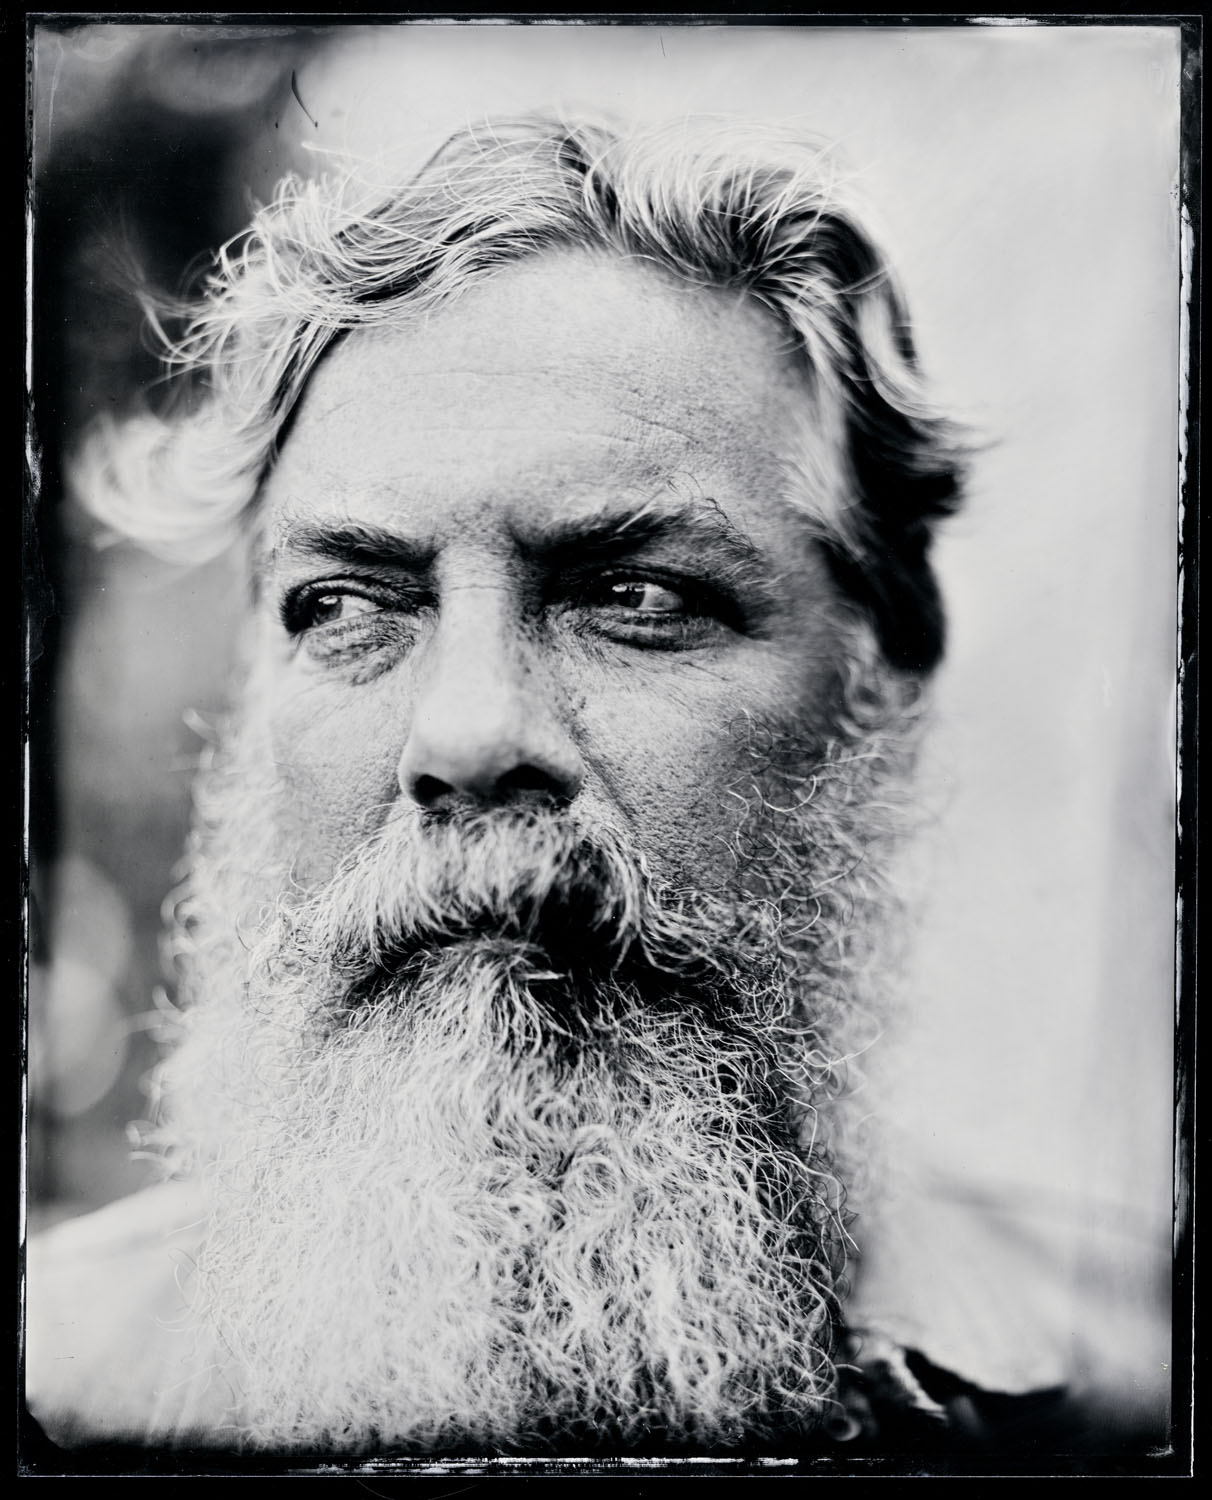 Andy Washington, tintype, 8x10.